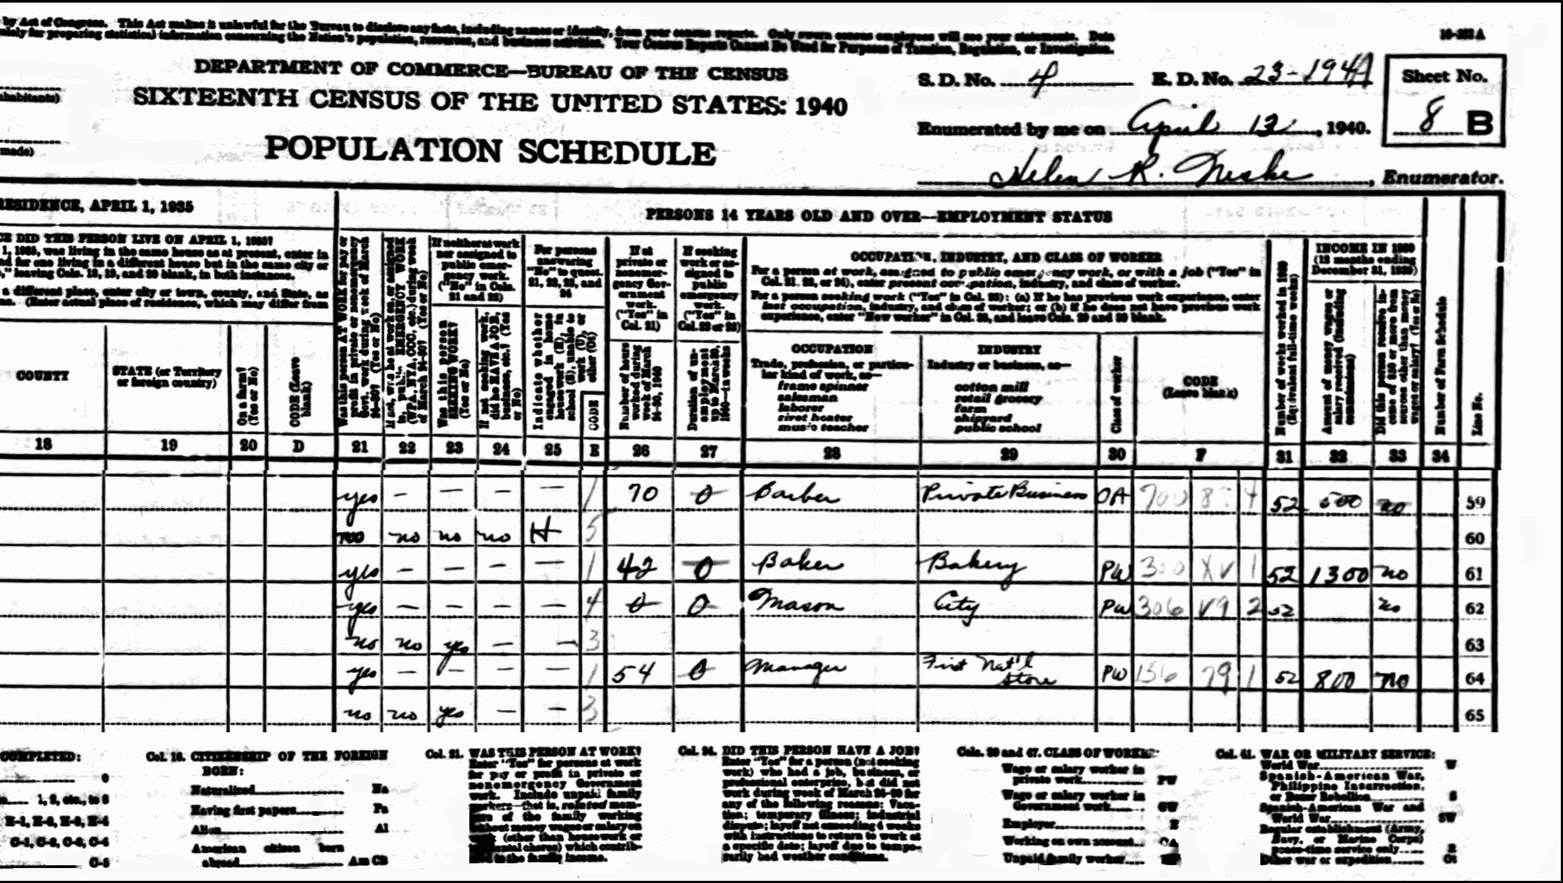 1940 US Federal Census Record for the George Mooradian Household (Right)